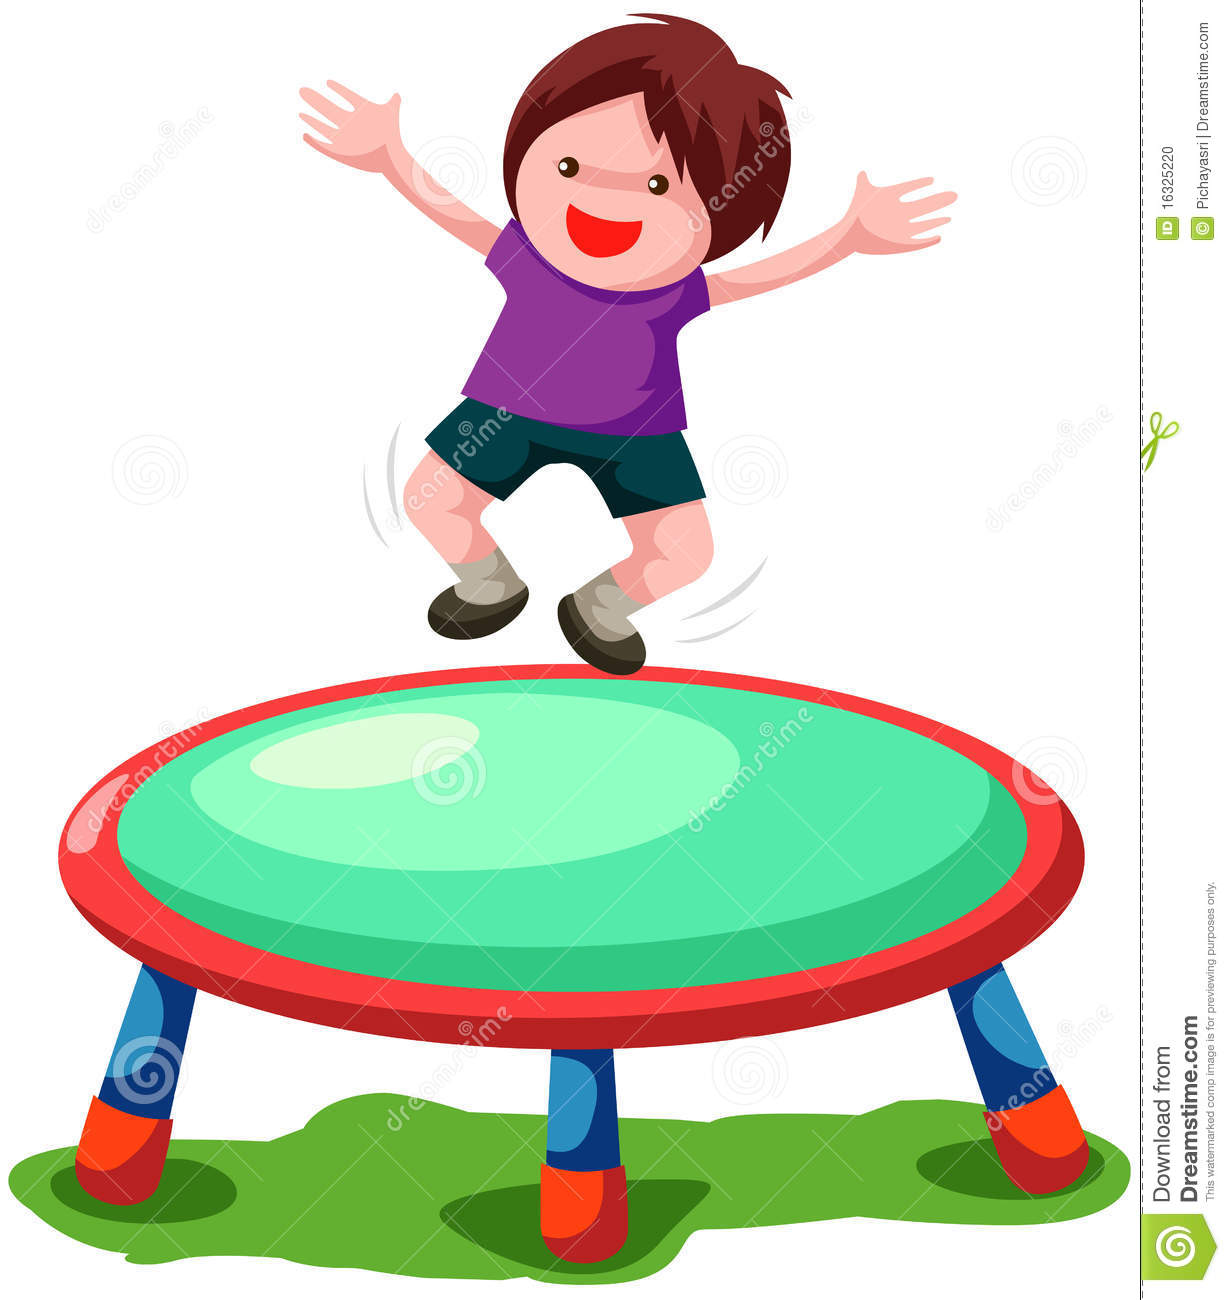 Jumping on a trampoline clipart 20 free Cliparts   Download images on Clipground 2020